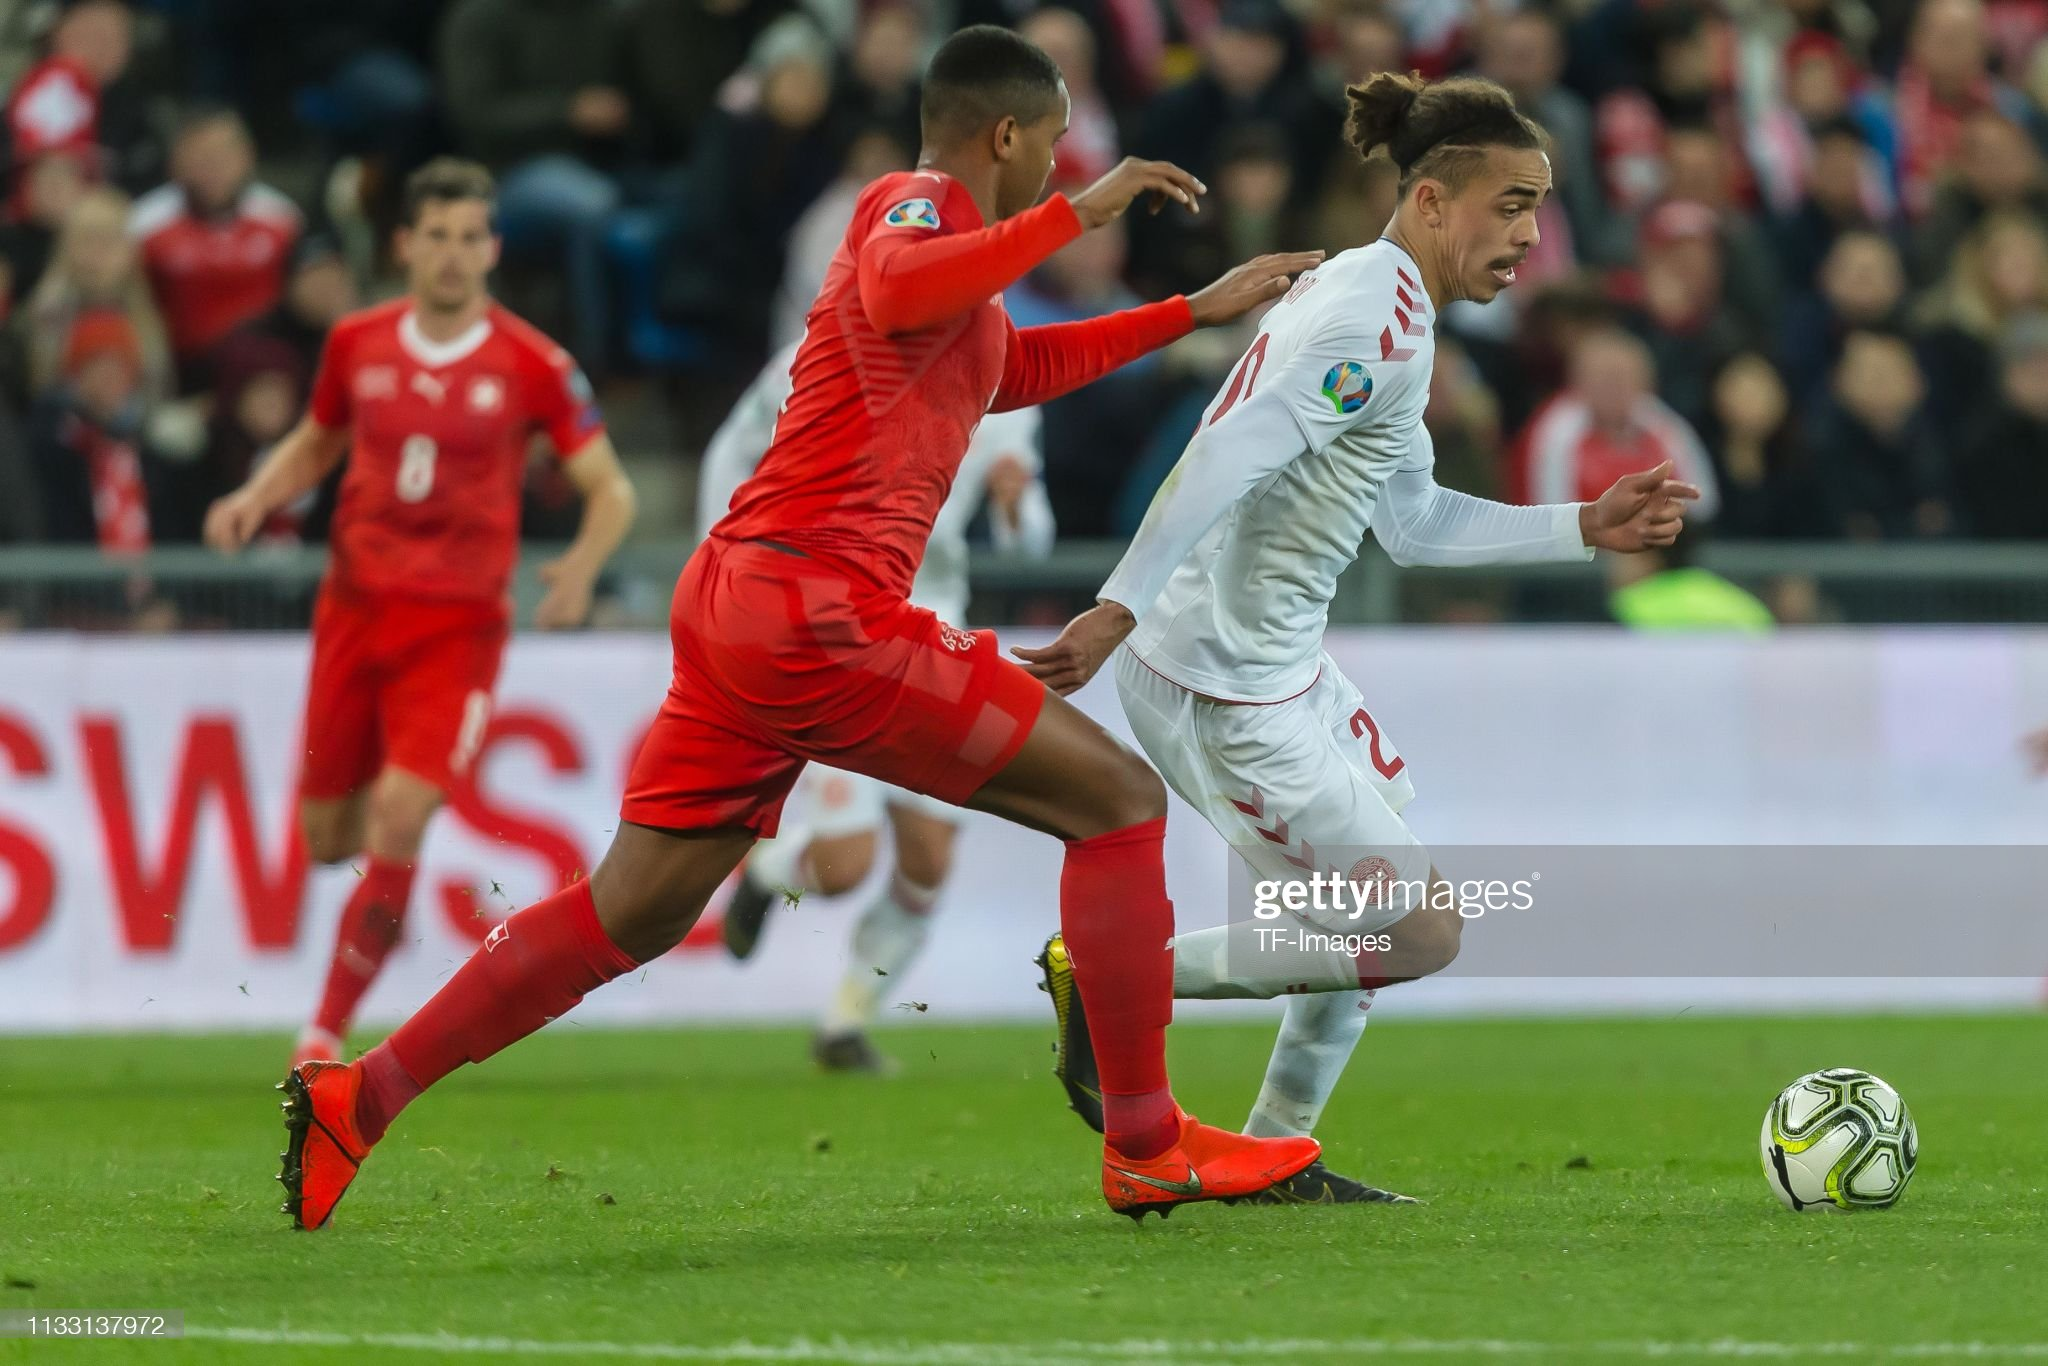 Denmark v Switzerland preview, prediction and odds